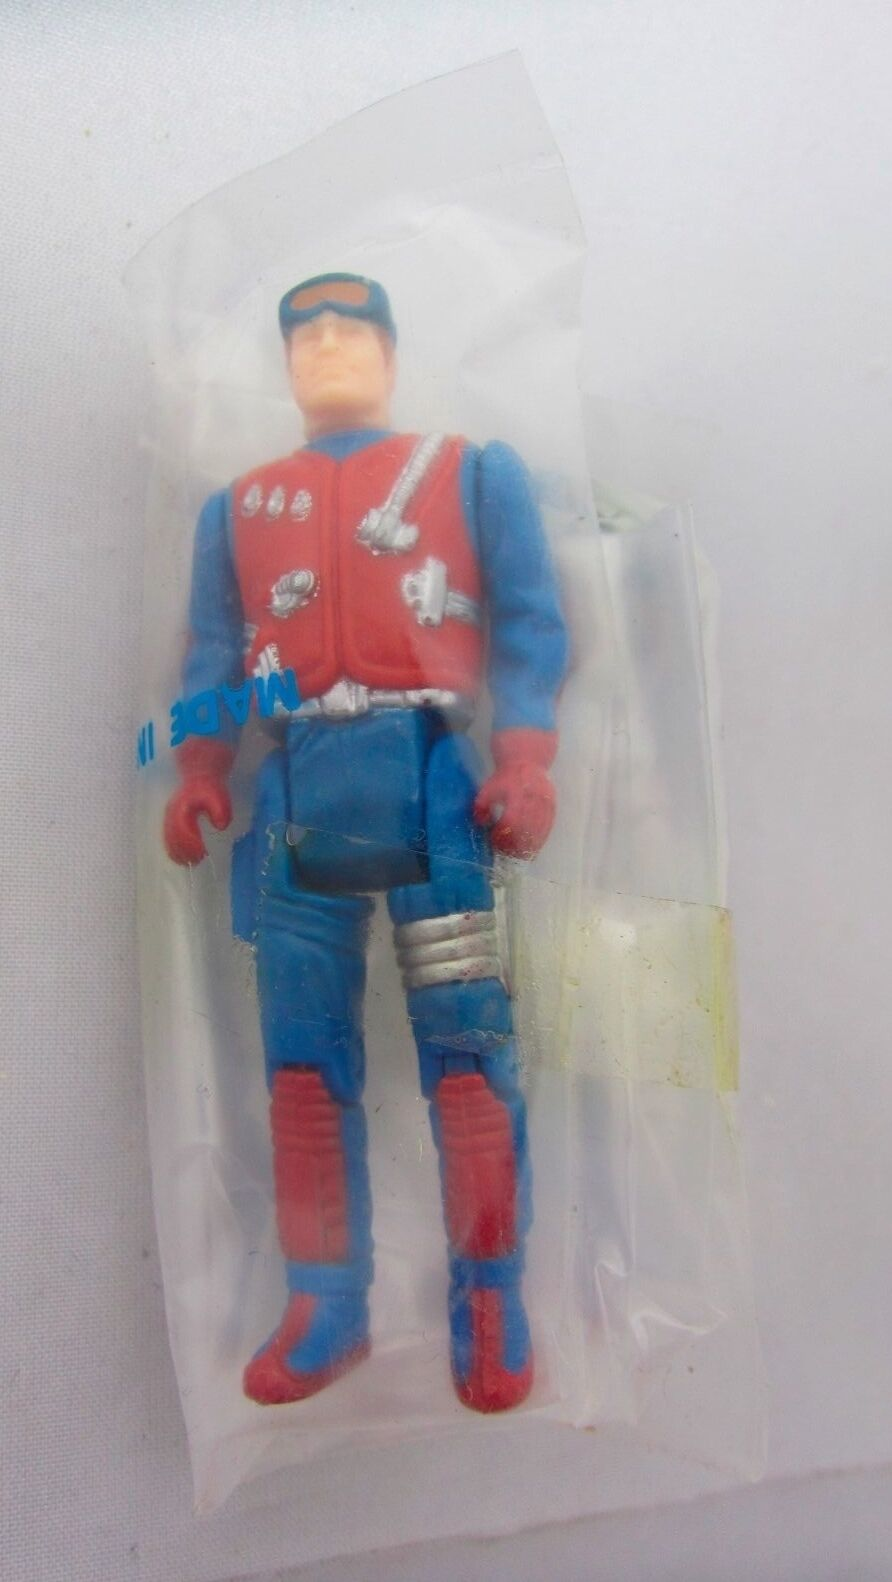 10x M.A.S.K Dusty Hayes Figures COMPLETE FACTORY FACTORY FACTORY BAGGIE Vintage Toys MASK Gator fd2686